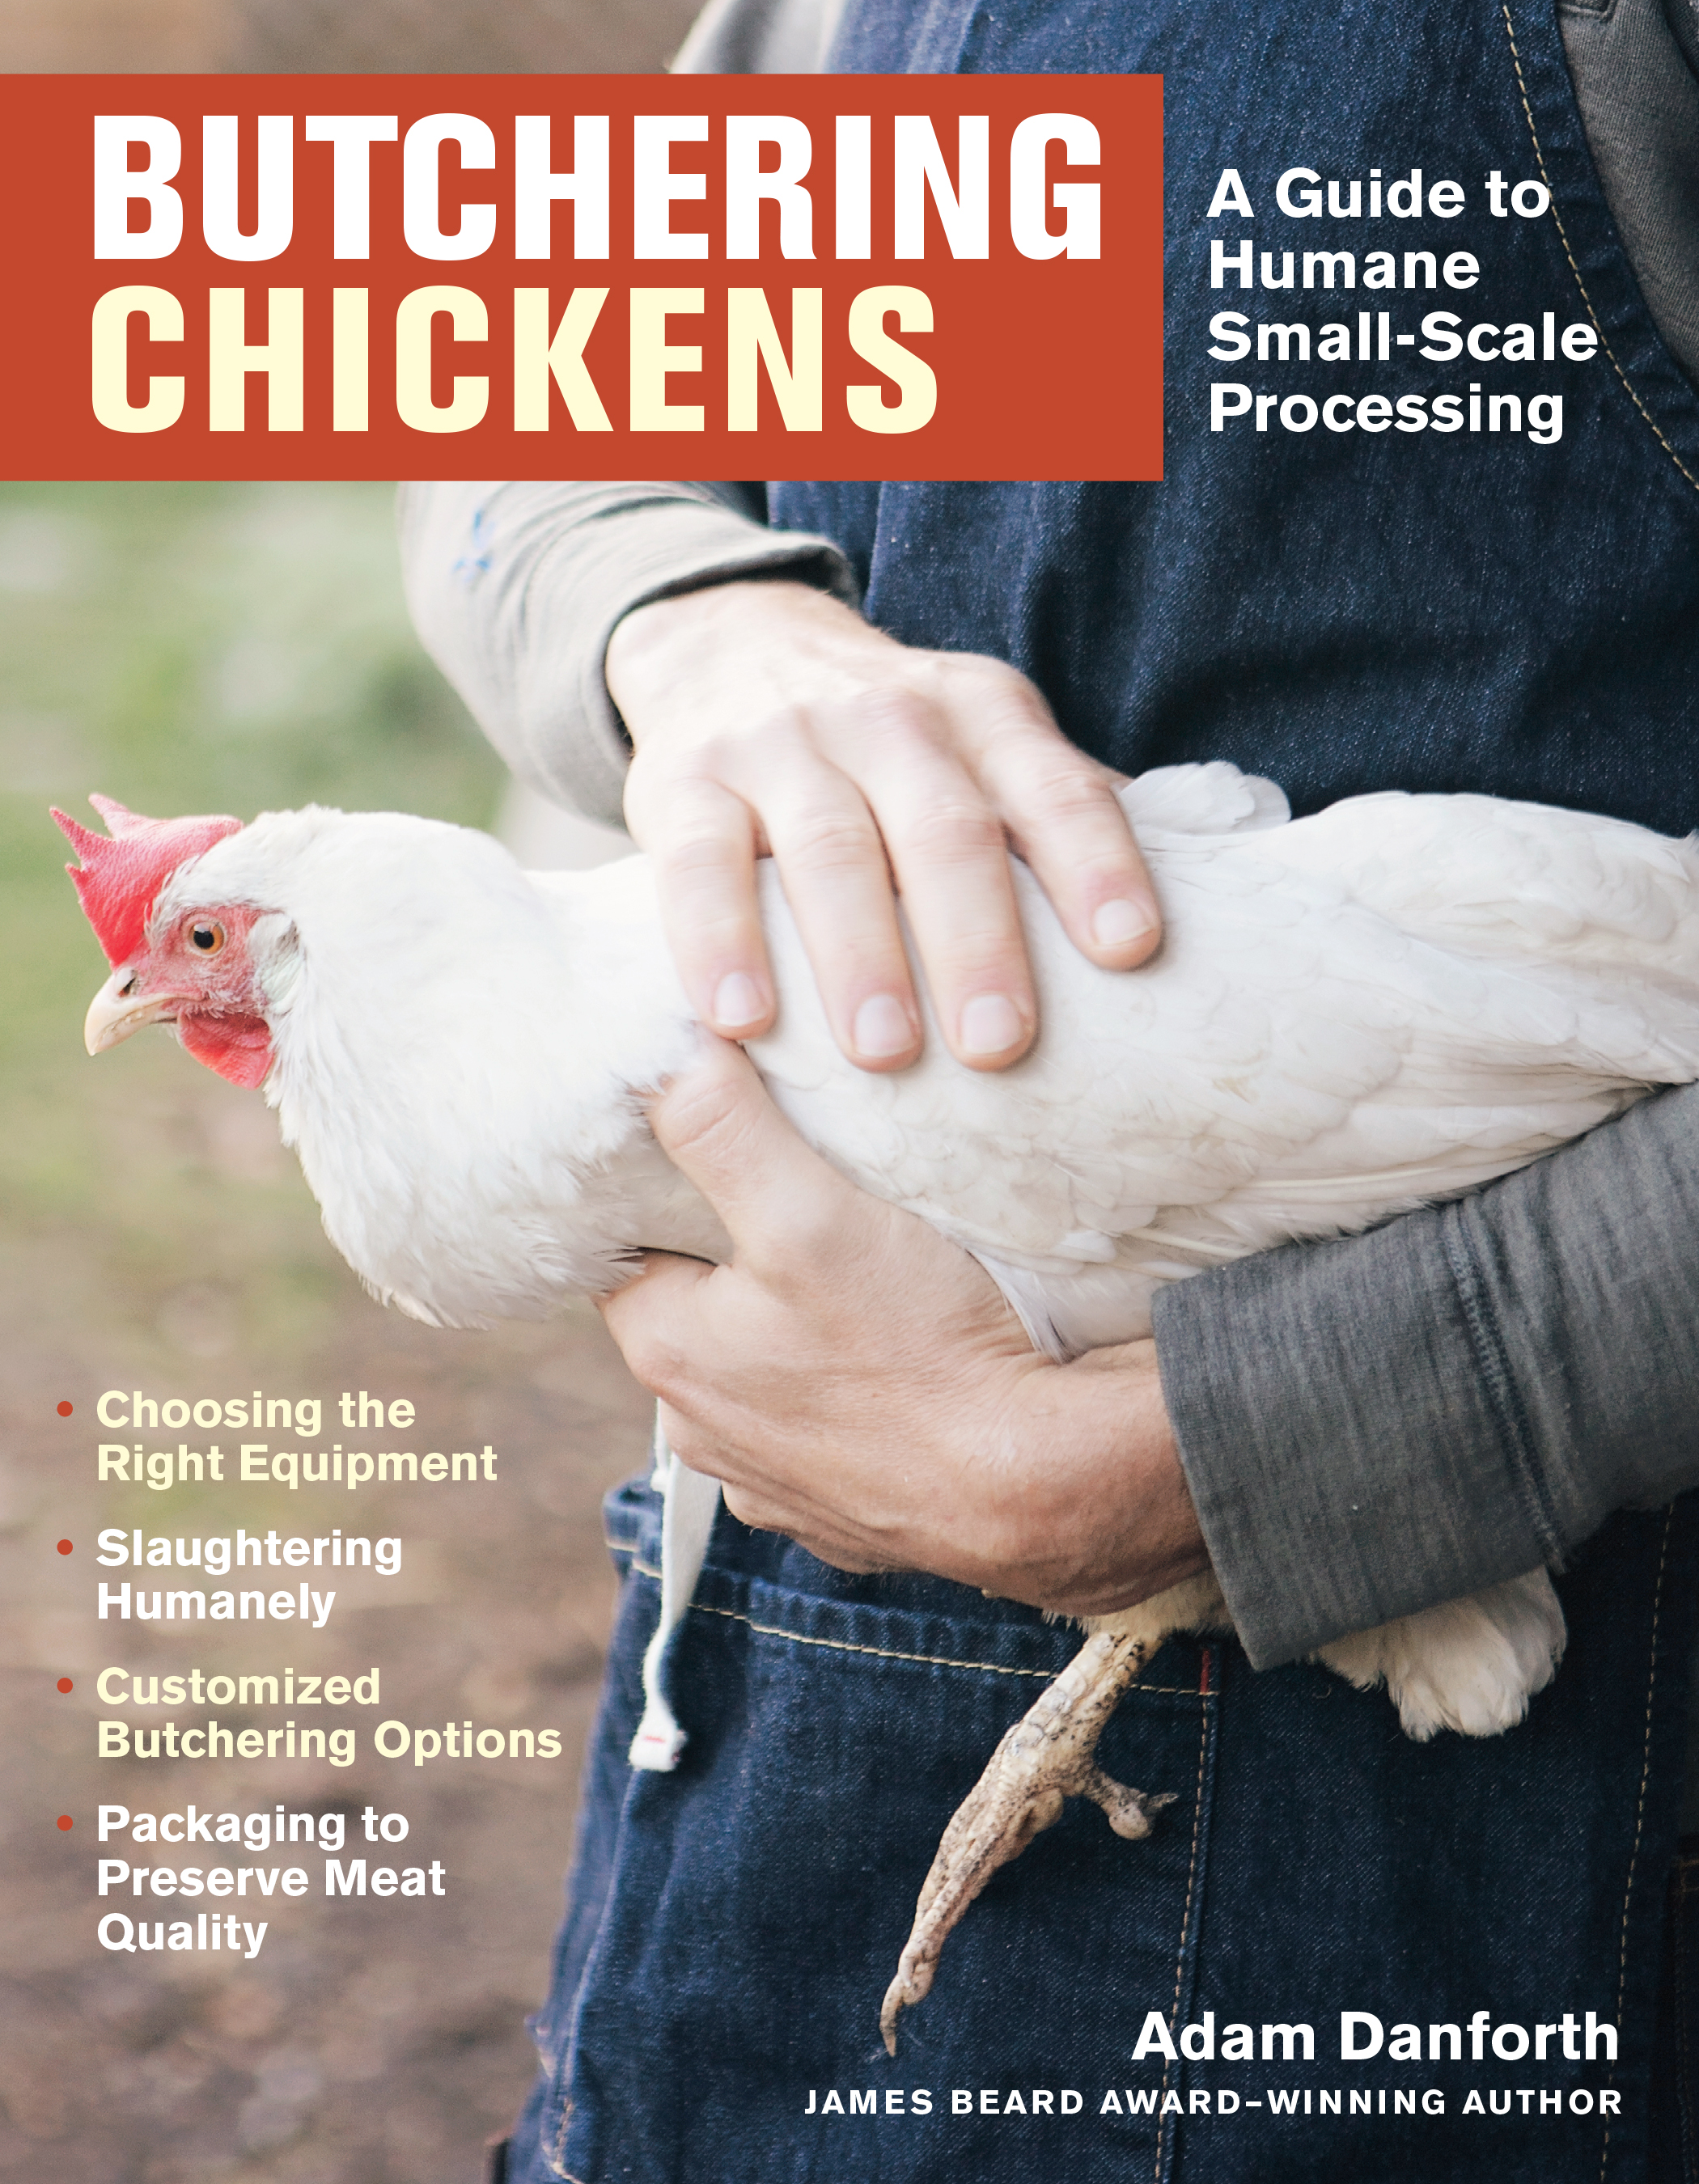 Butchering Chickens A Guide to Humane, Small-Scale Processing - Adam Danforth